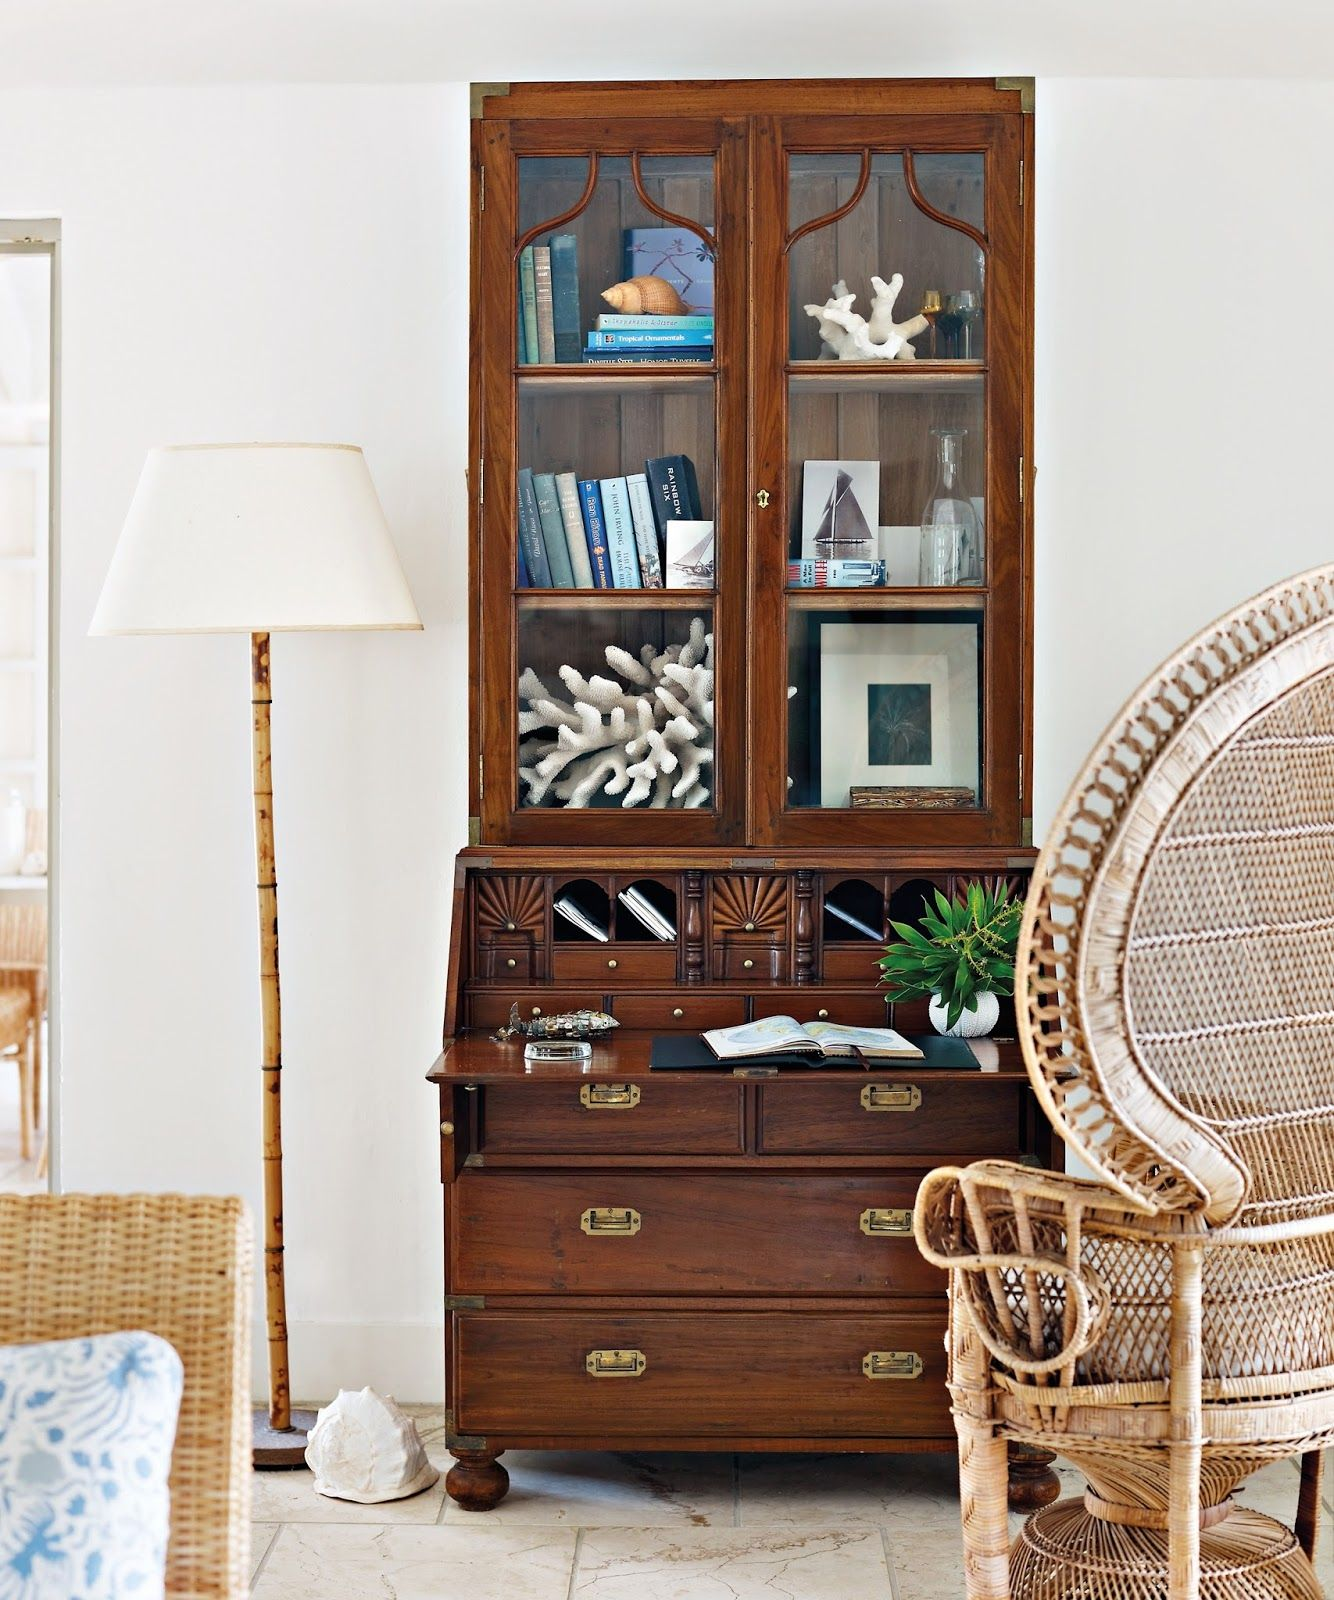 Secretary Desk With Wicker Peacock Chair